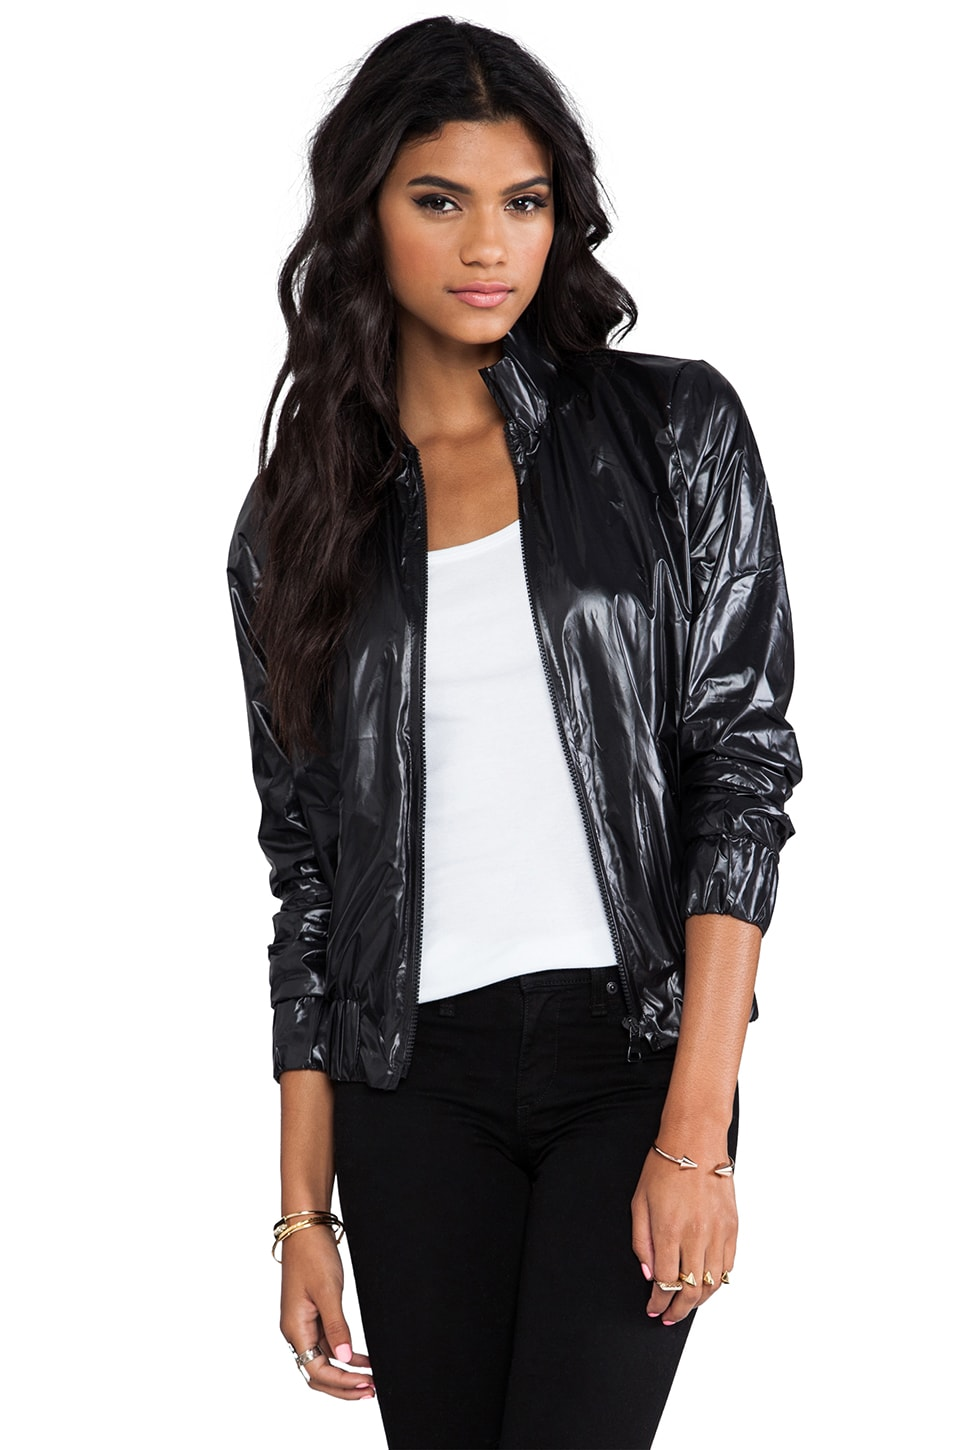 MAX FOWLES Athletic Jacket in Black Shiny